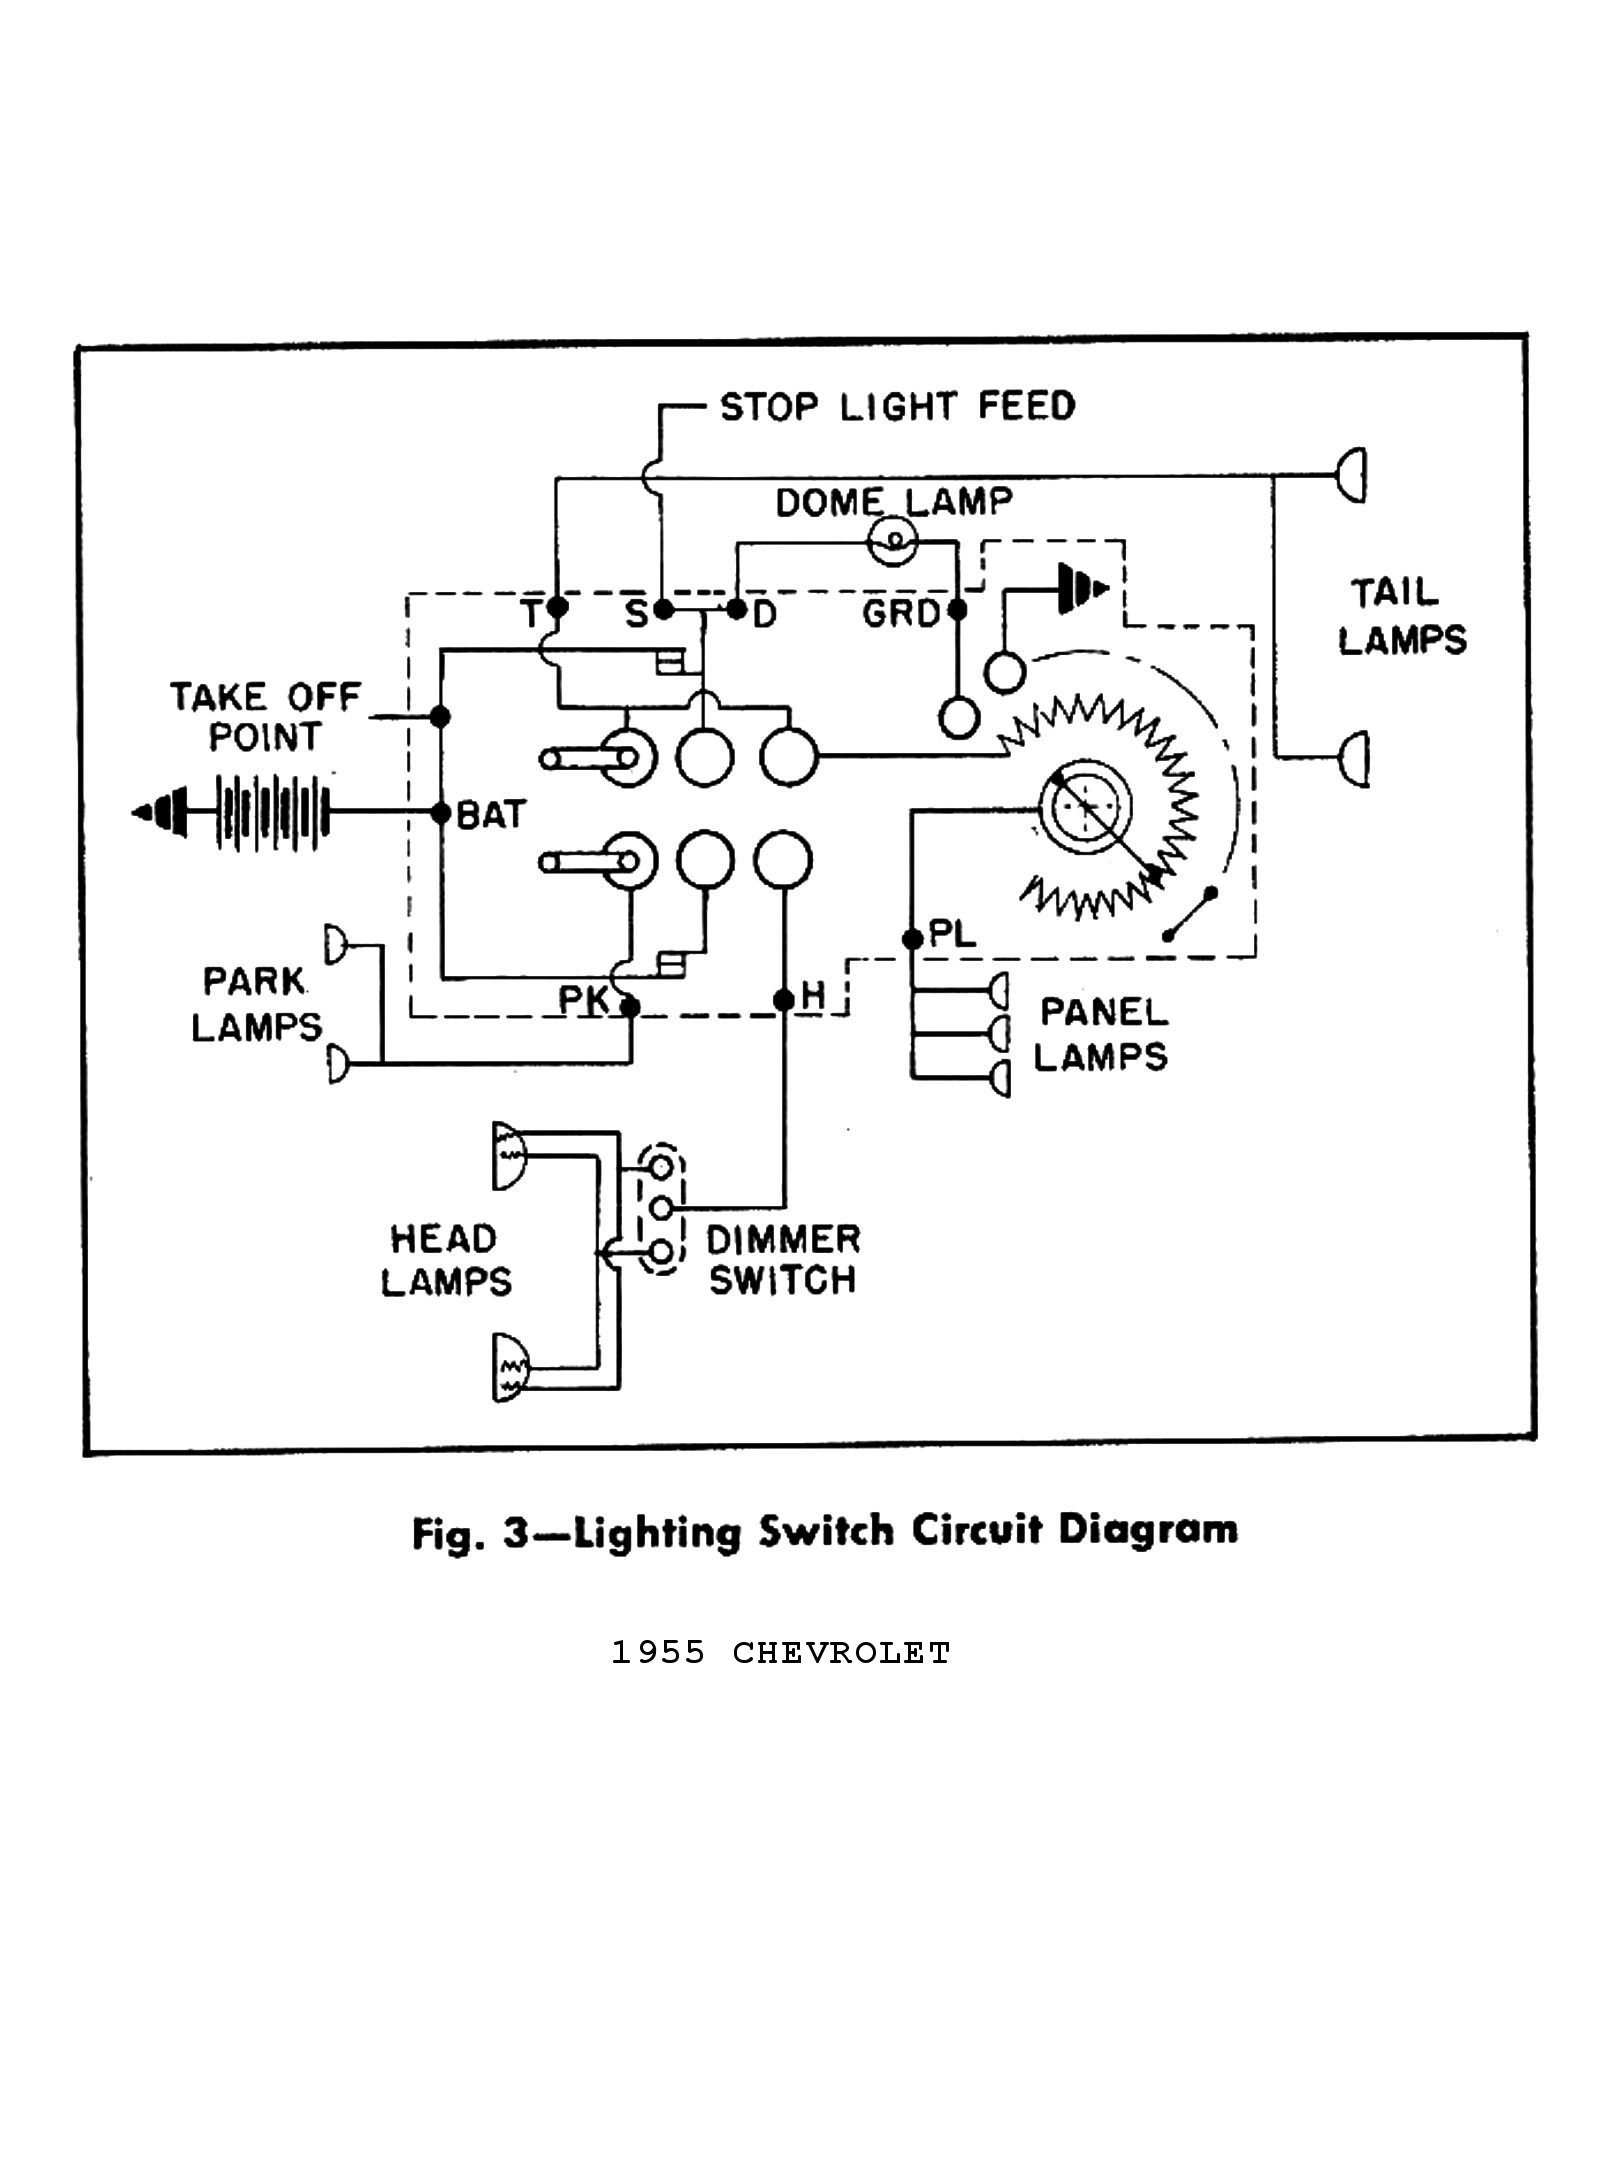 Ldv Ignition Switch Wiring Diagram The Portal And Forum Of Jeep 1954 Chevrolet Third Rh 17 12 14 Jacobwinterstein Com